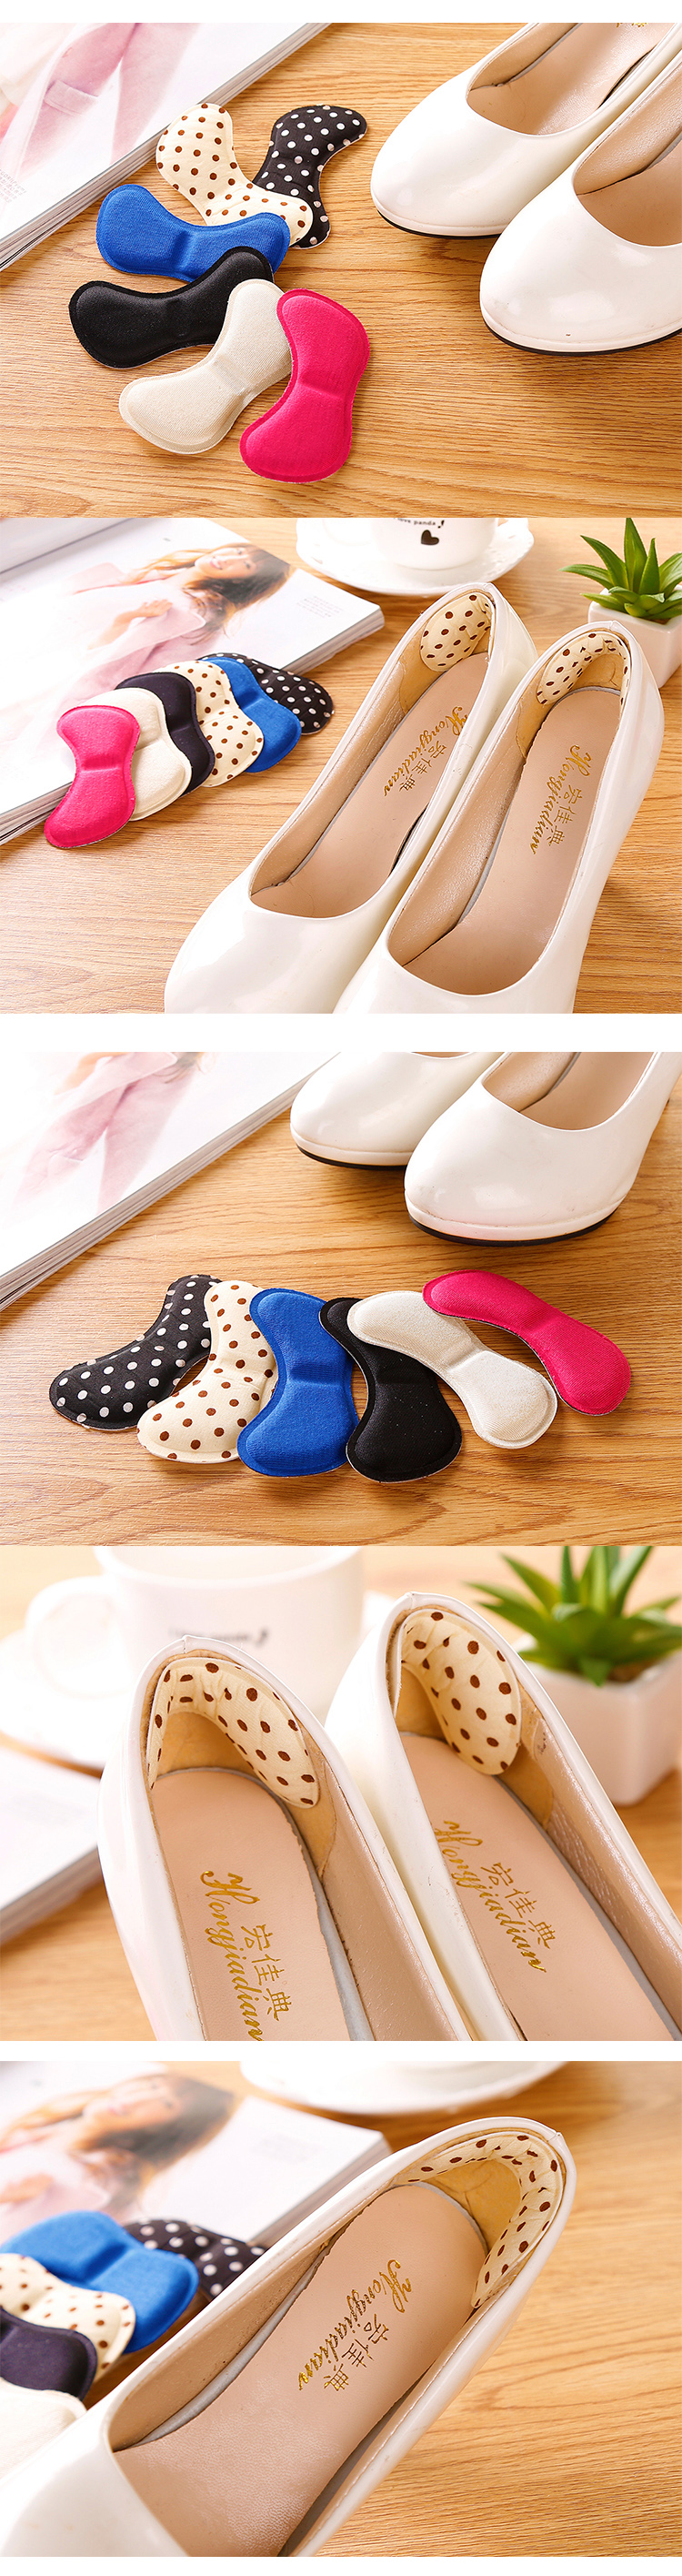 Soft Foam Half Soles Insoles Shoes Back Inserts Heel Liner Cushion Protector Foot Care Shoe Pads Grips Stickers (7)